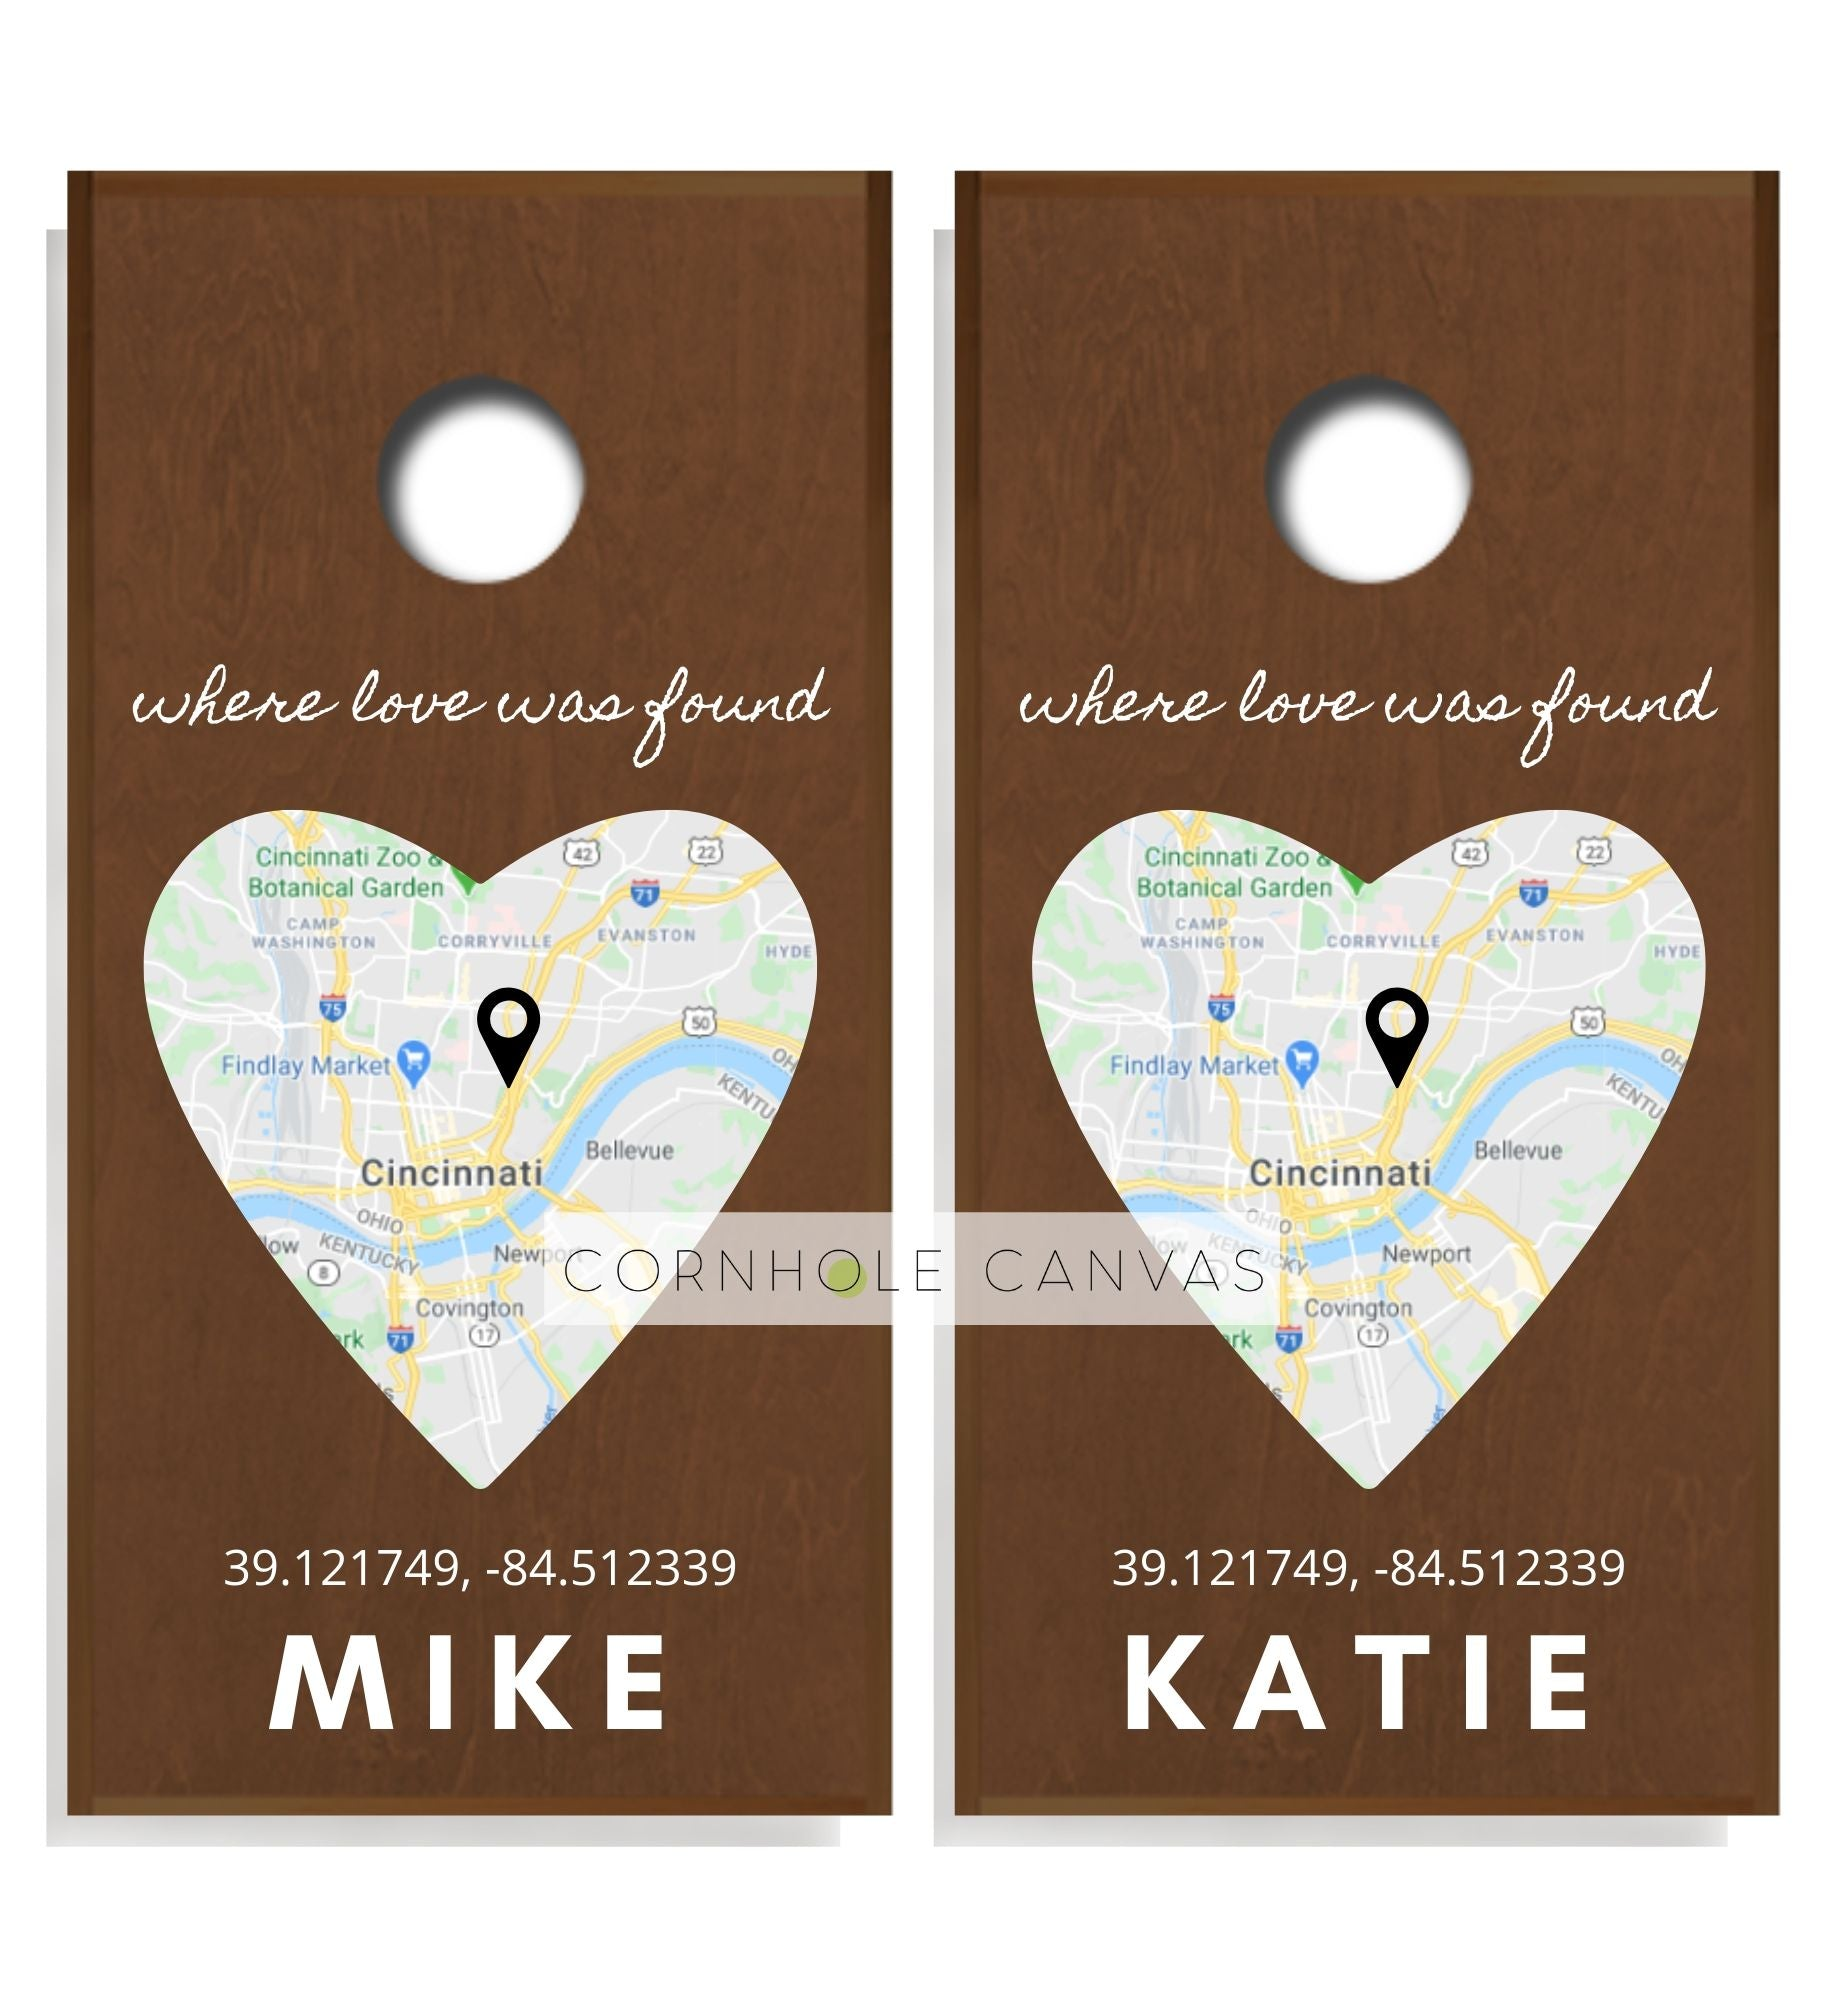 Wedding Cornhole Boards - Regulation Size - Heart Print - Where We Met